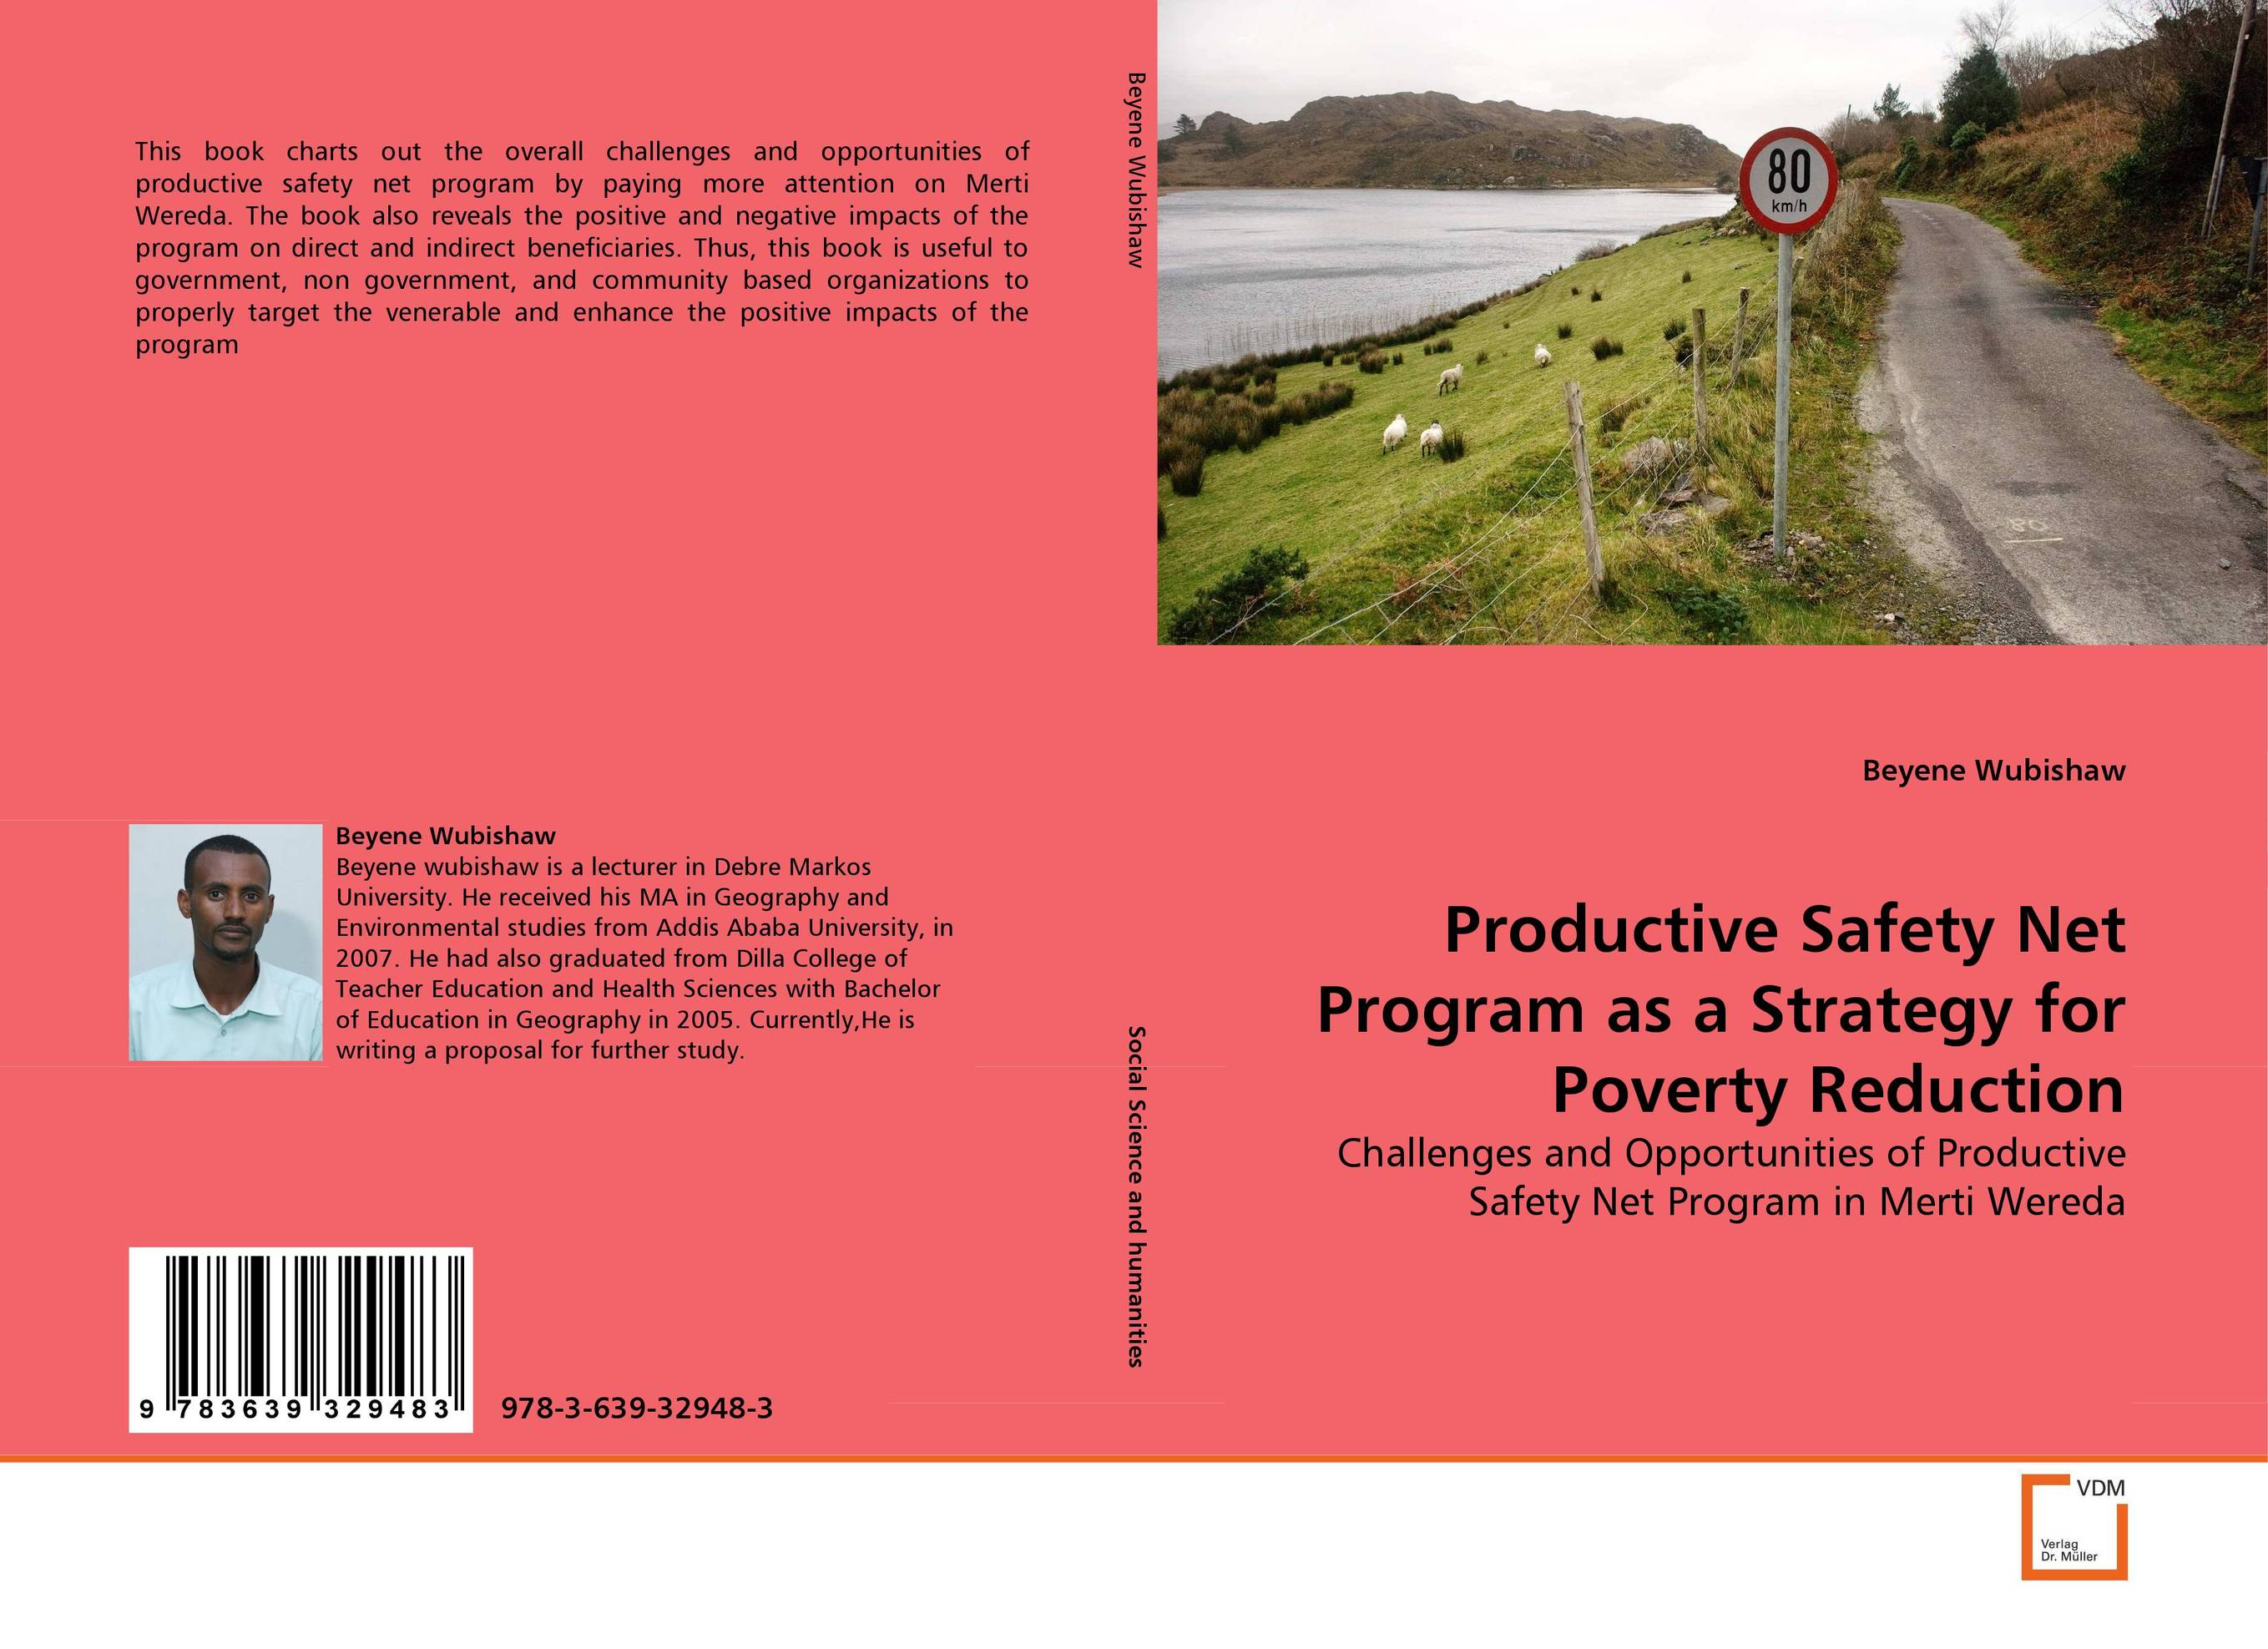 Productive Safety Net Program as a Strategy for Poverty Reduction the most venerable book